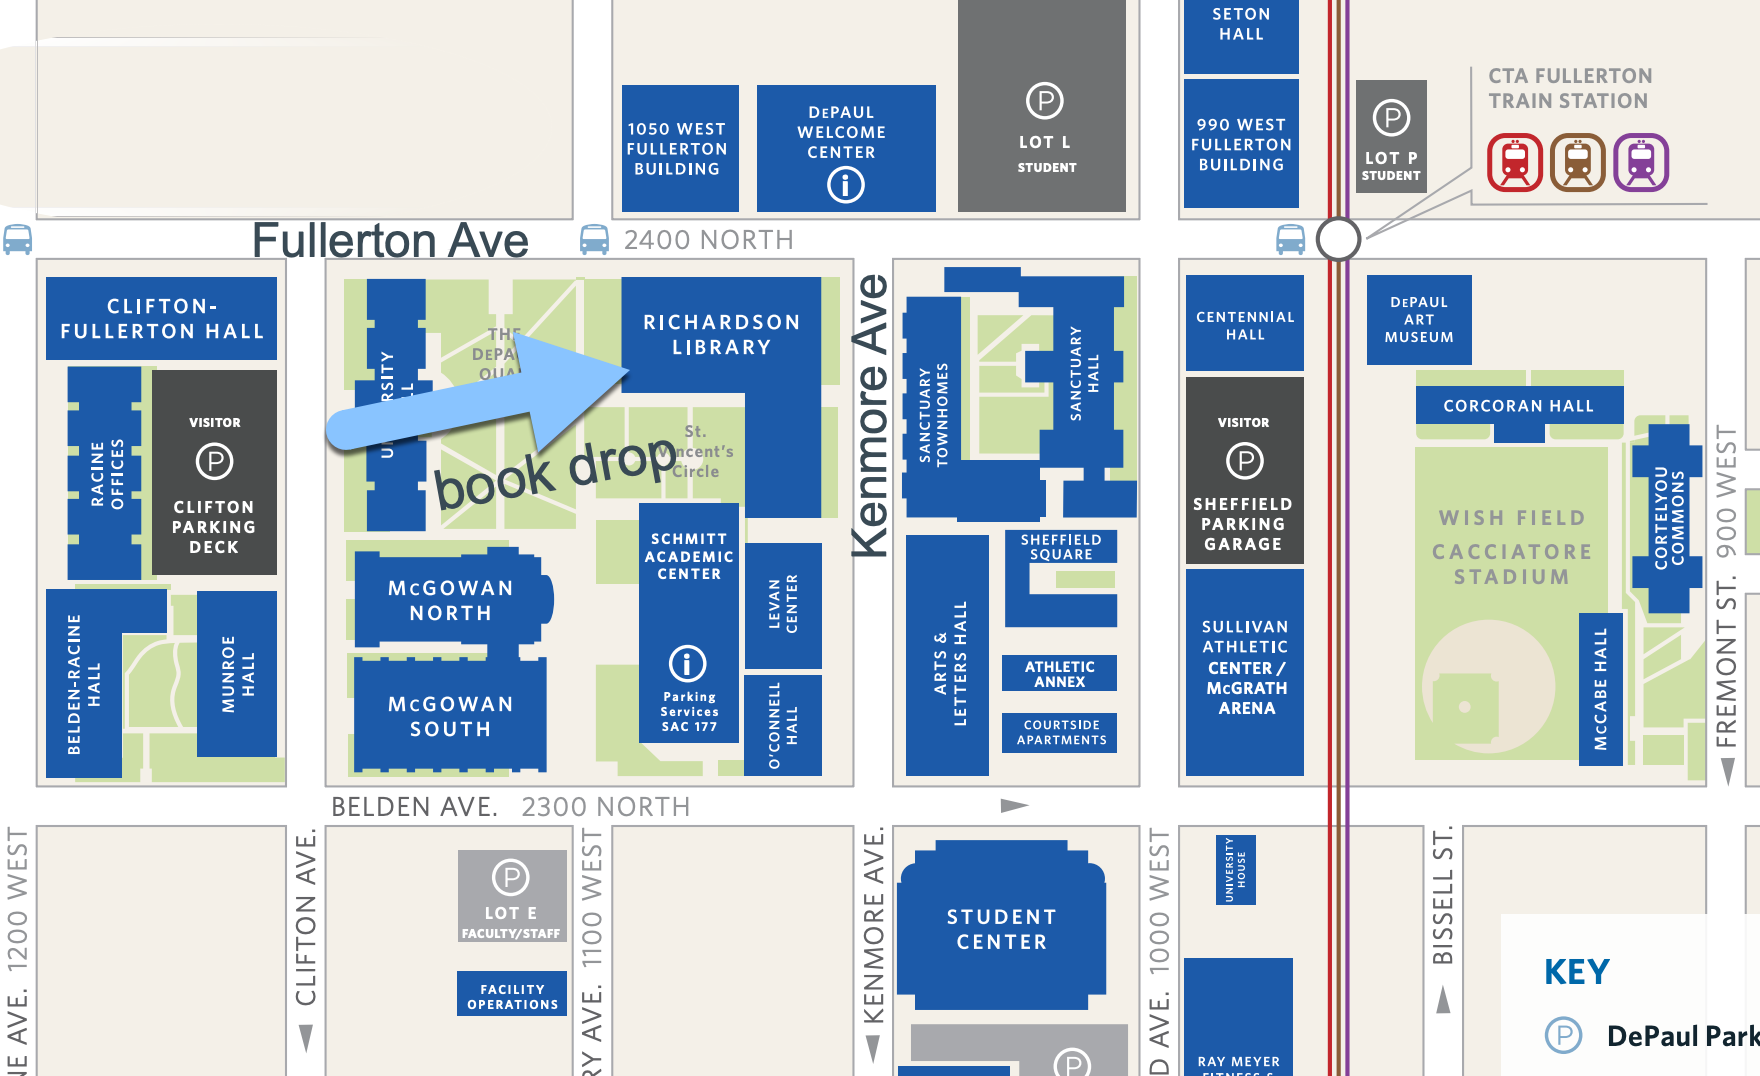 Map shows location of book drop on west quad side of library near Fullerton Ave